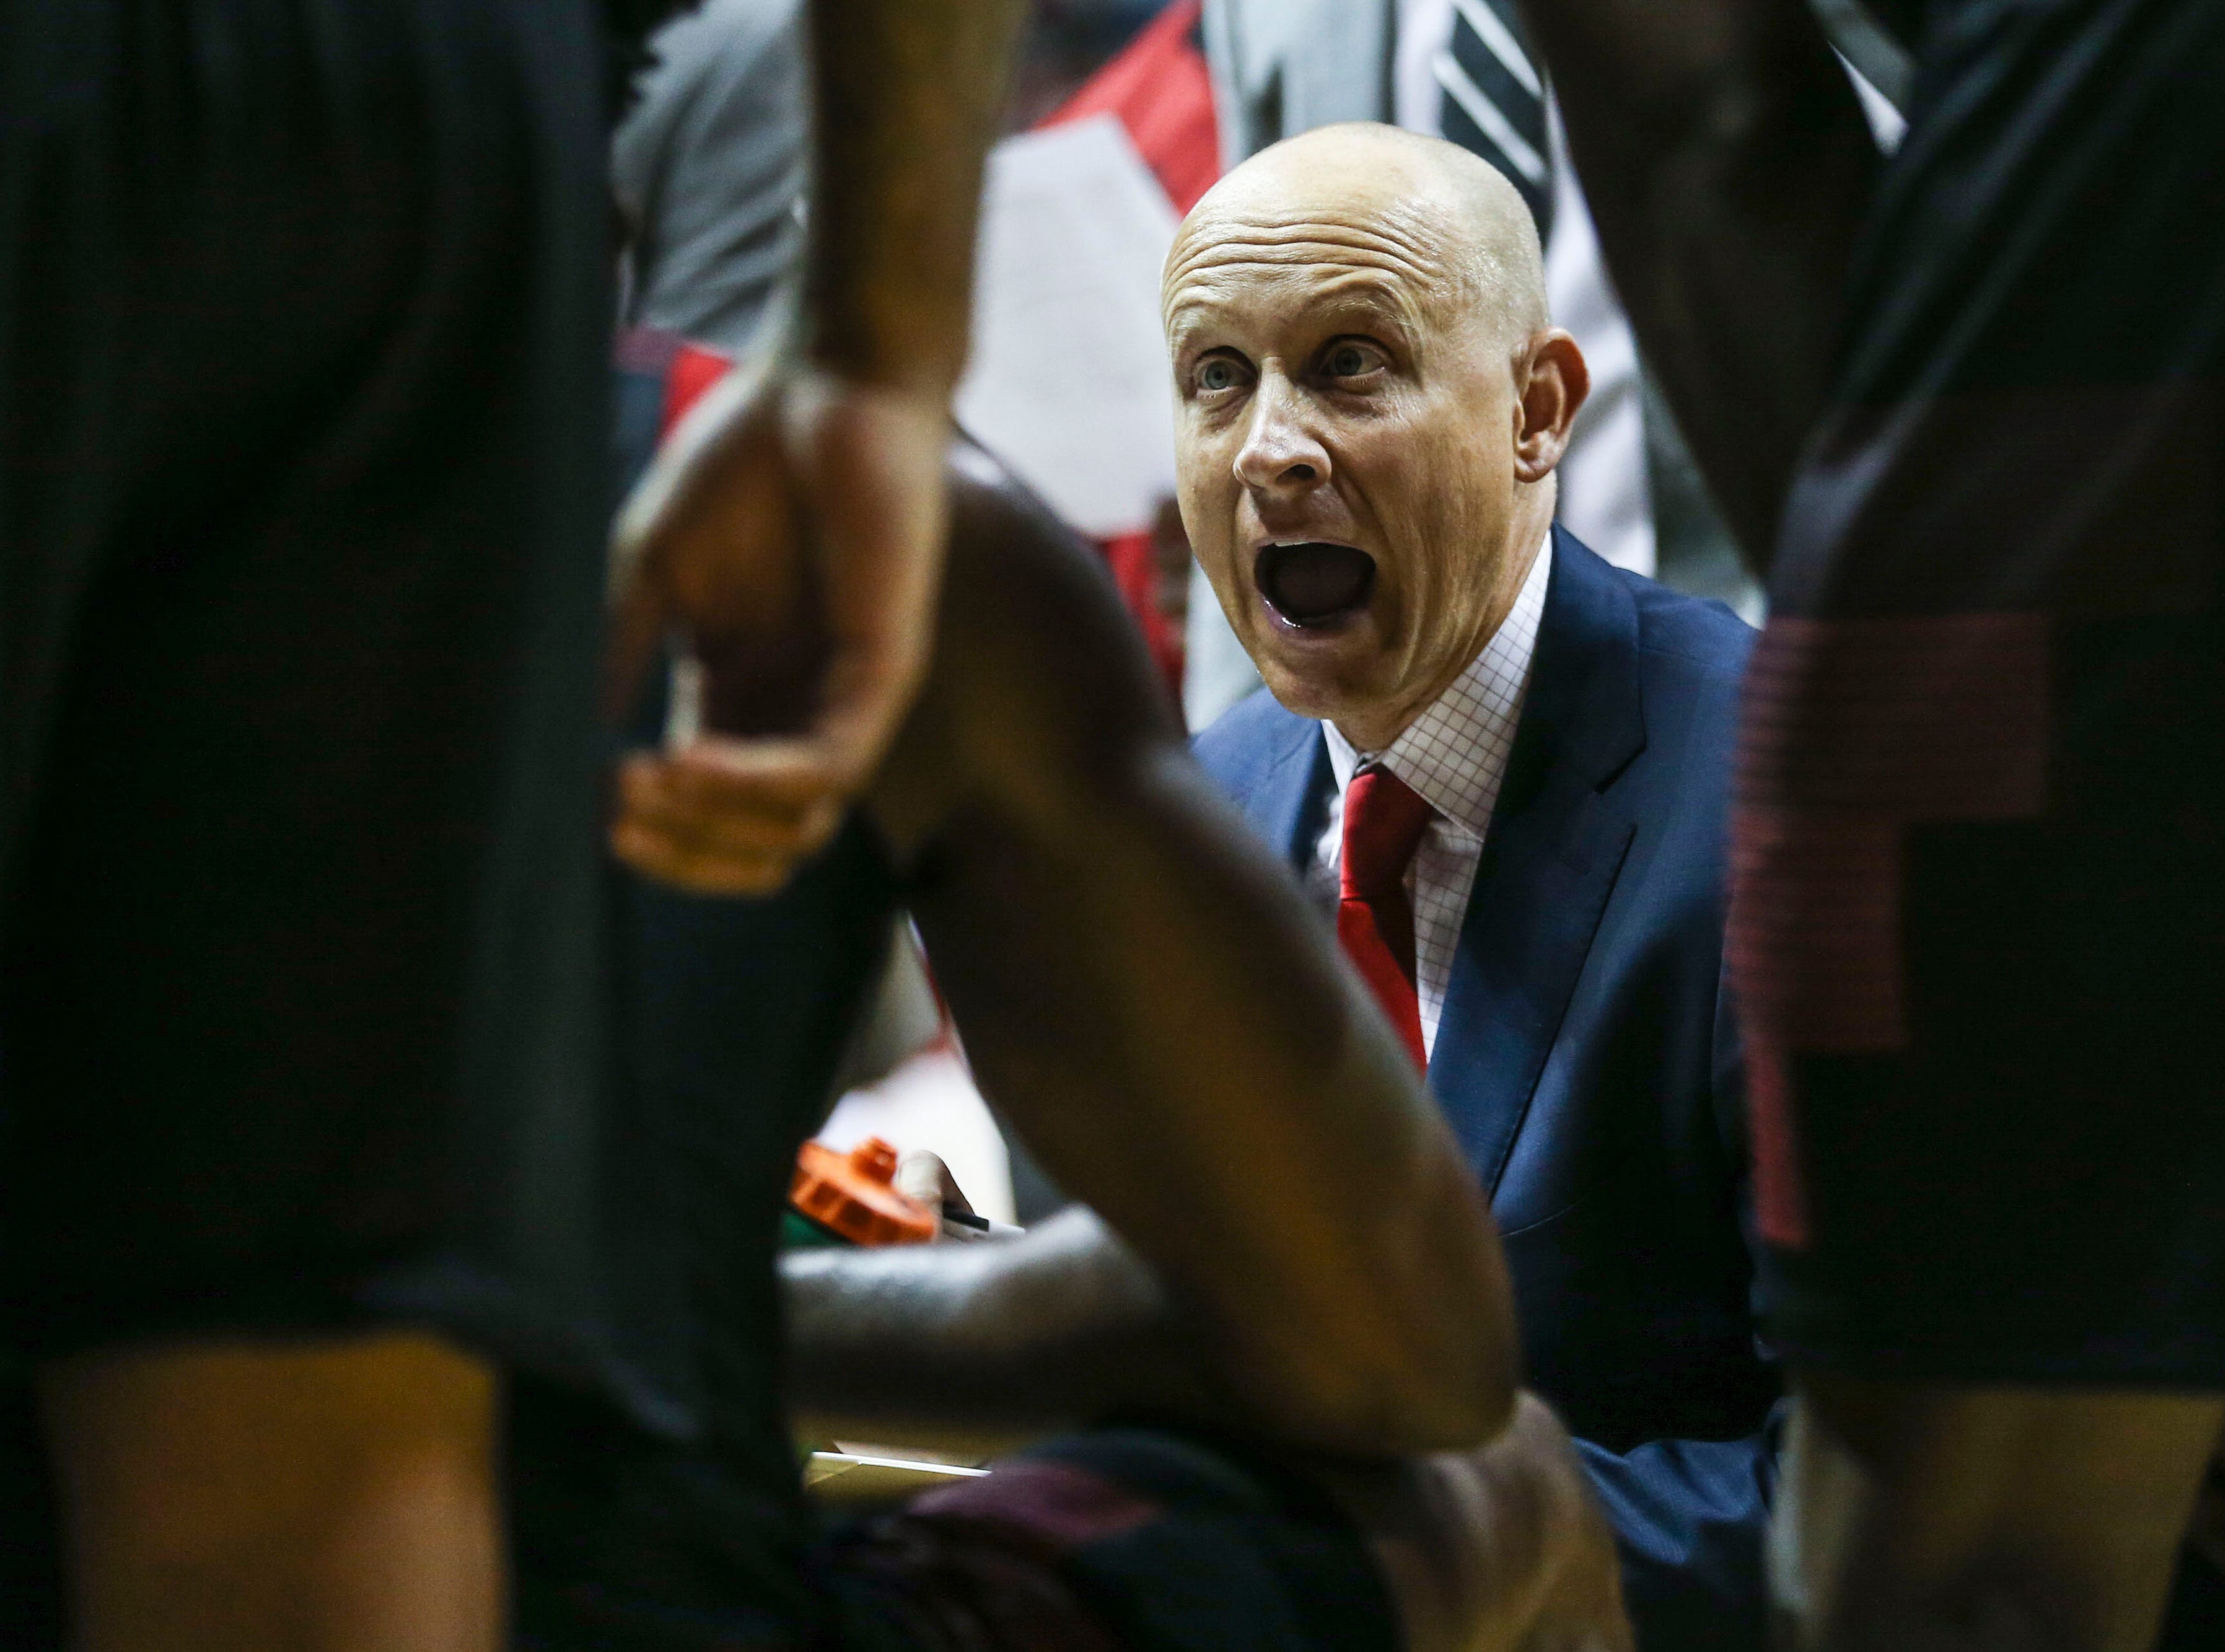 "Louisville's Chris Mack yells instructions to his team late in the second half Saturday, Dec. 8, 2018 at Simon Skjodt Assembly Hall in Bloomington, Ind. ""We couldn't establish anything inside today,"" said Mack afterwards. The Hoosiers beat Louisville 68-67"